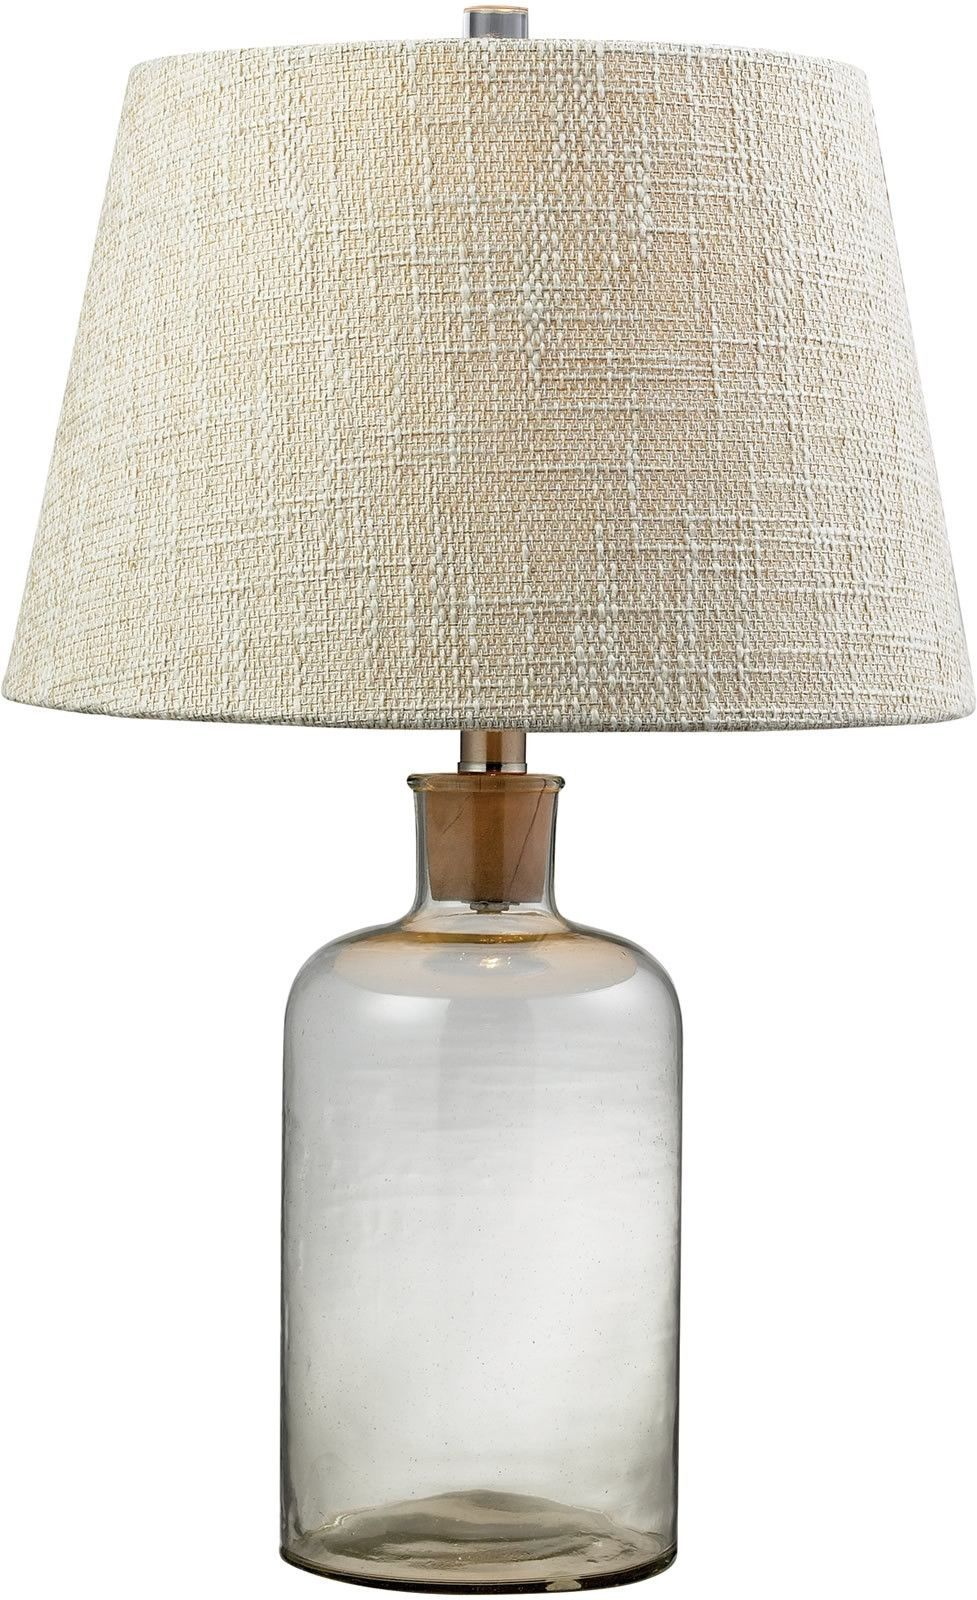 0 022239 1 Light 3 Way Table Lamp Clear Table Lamp Table Lamp